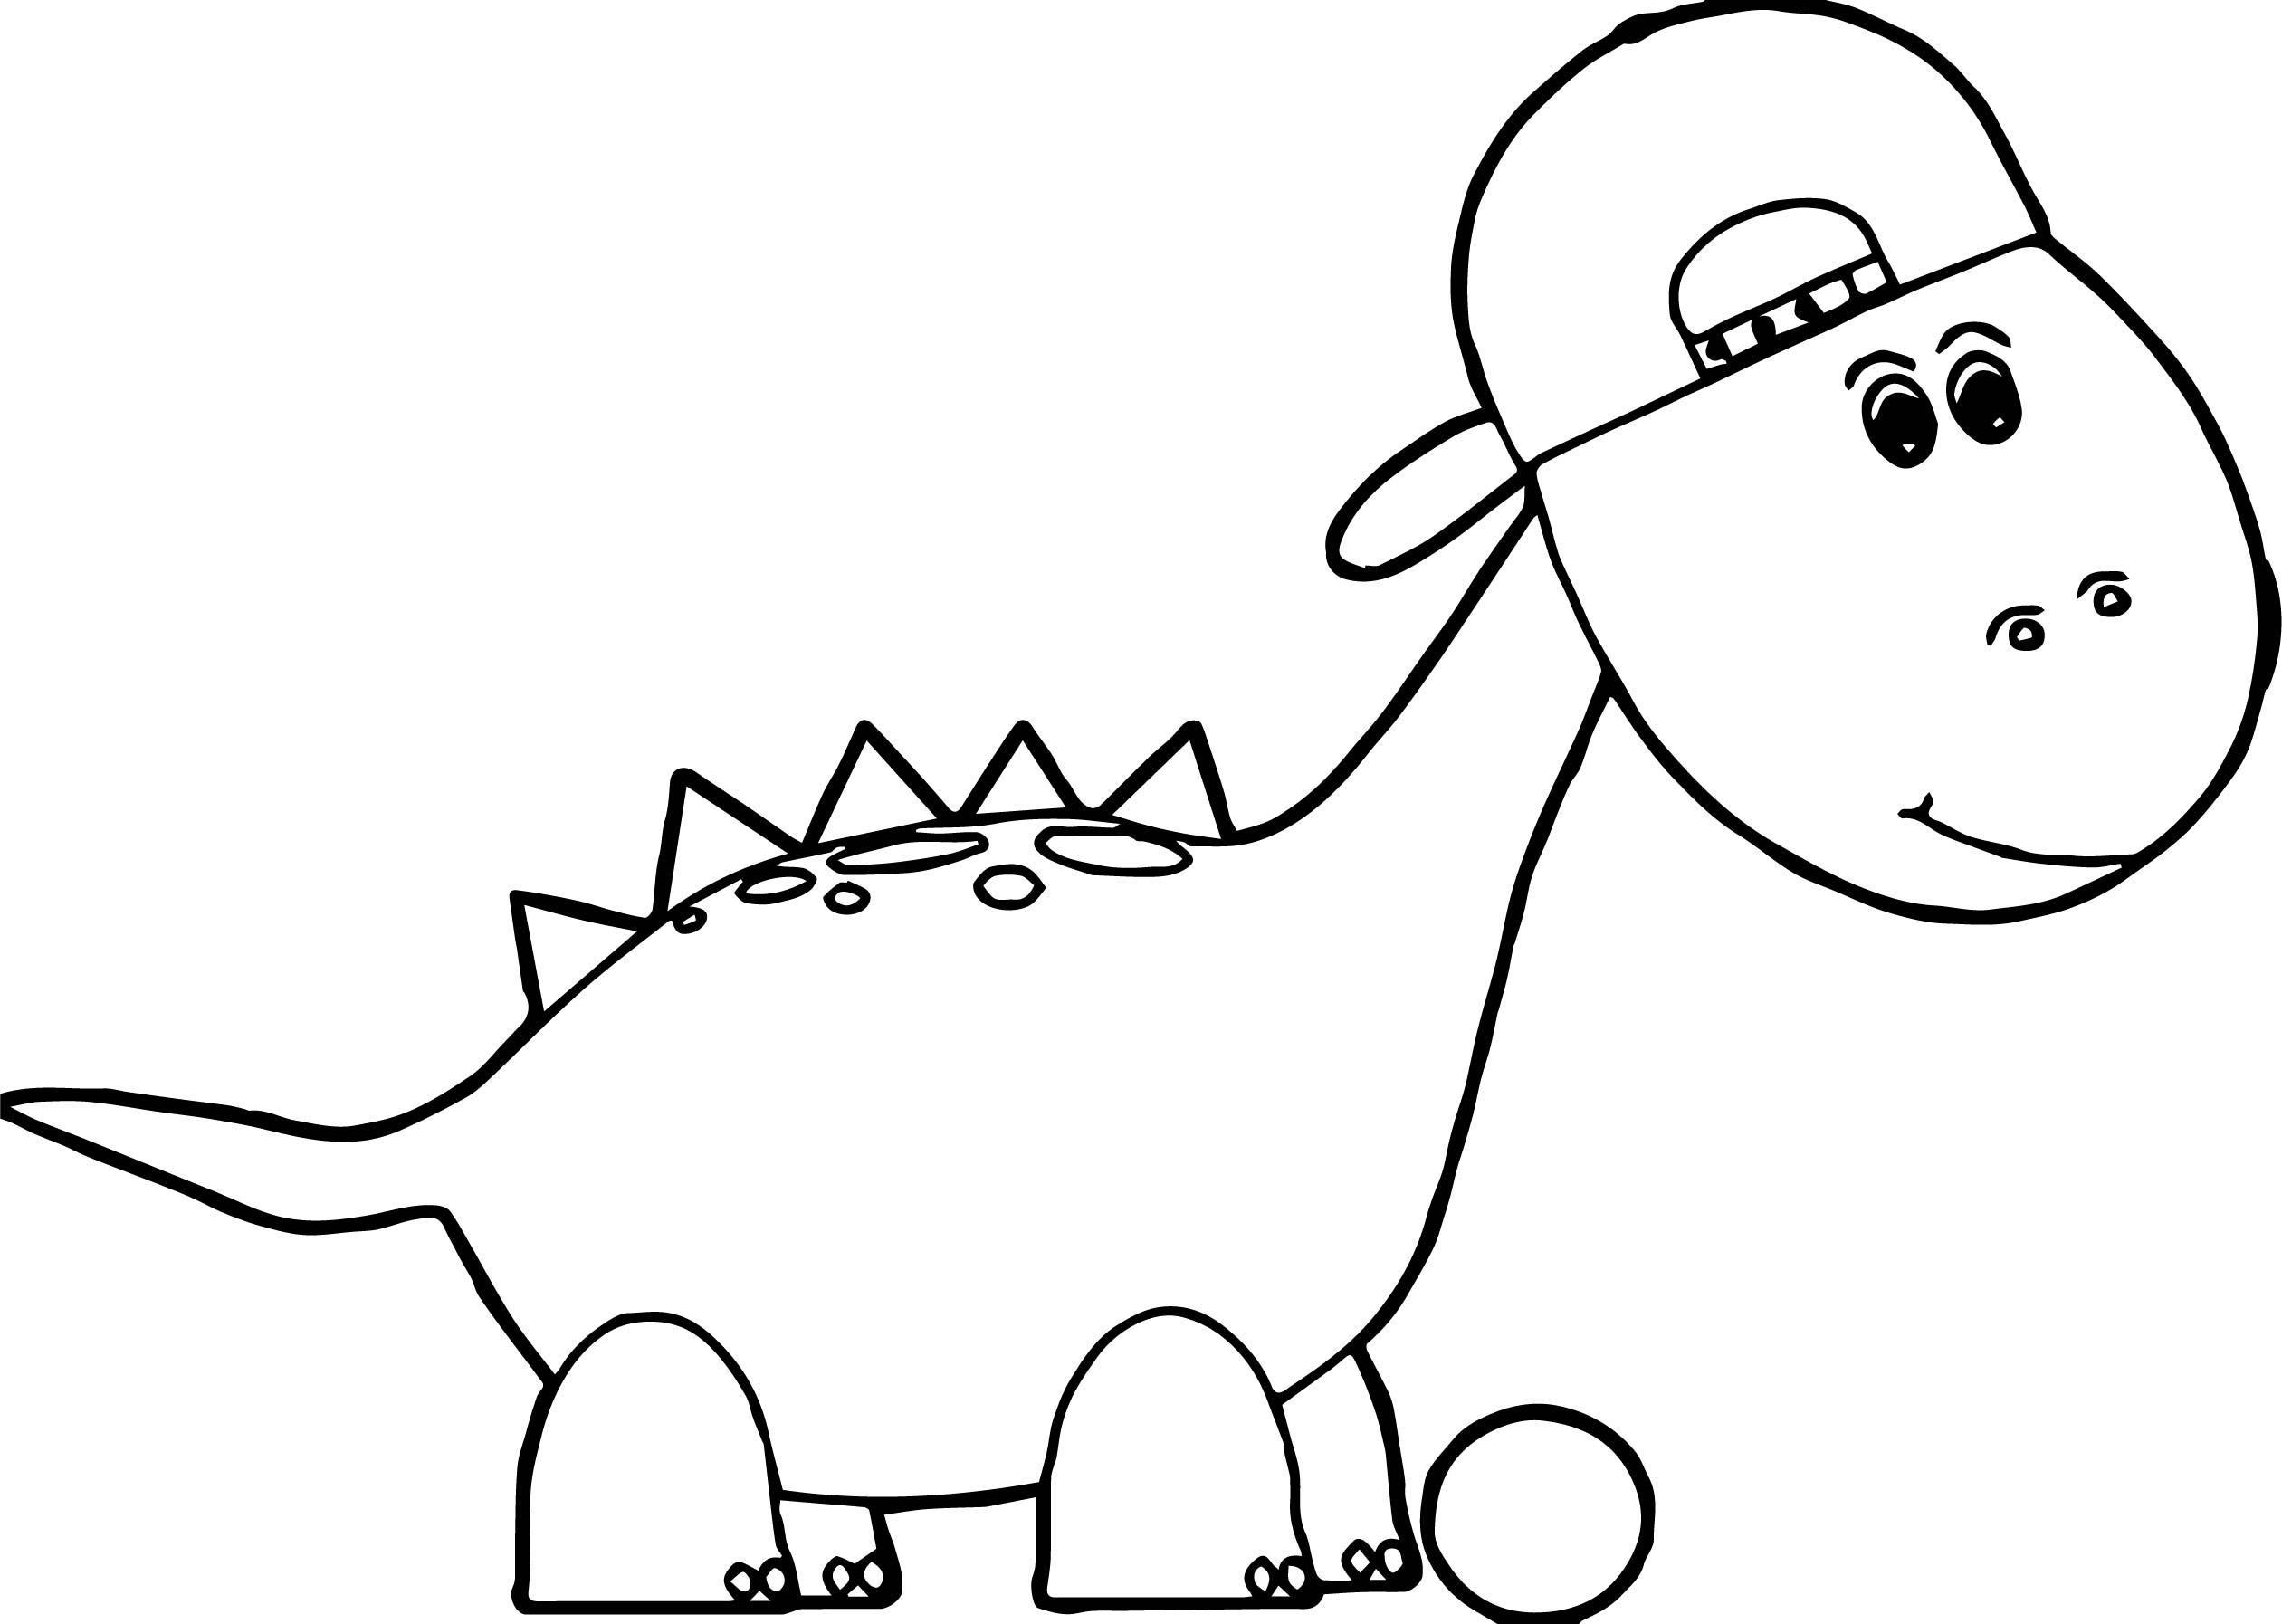 Christmas Dinosaur Coloring Pages - Costumepartyrun